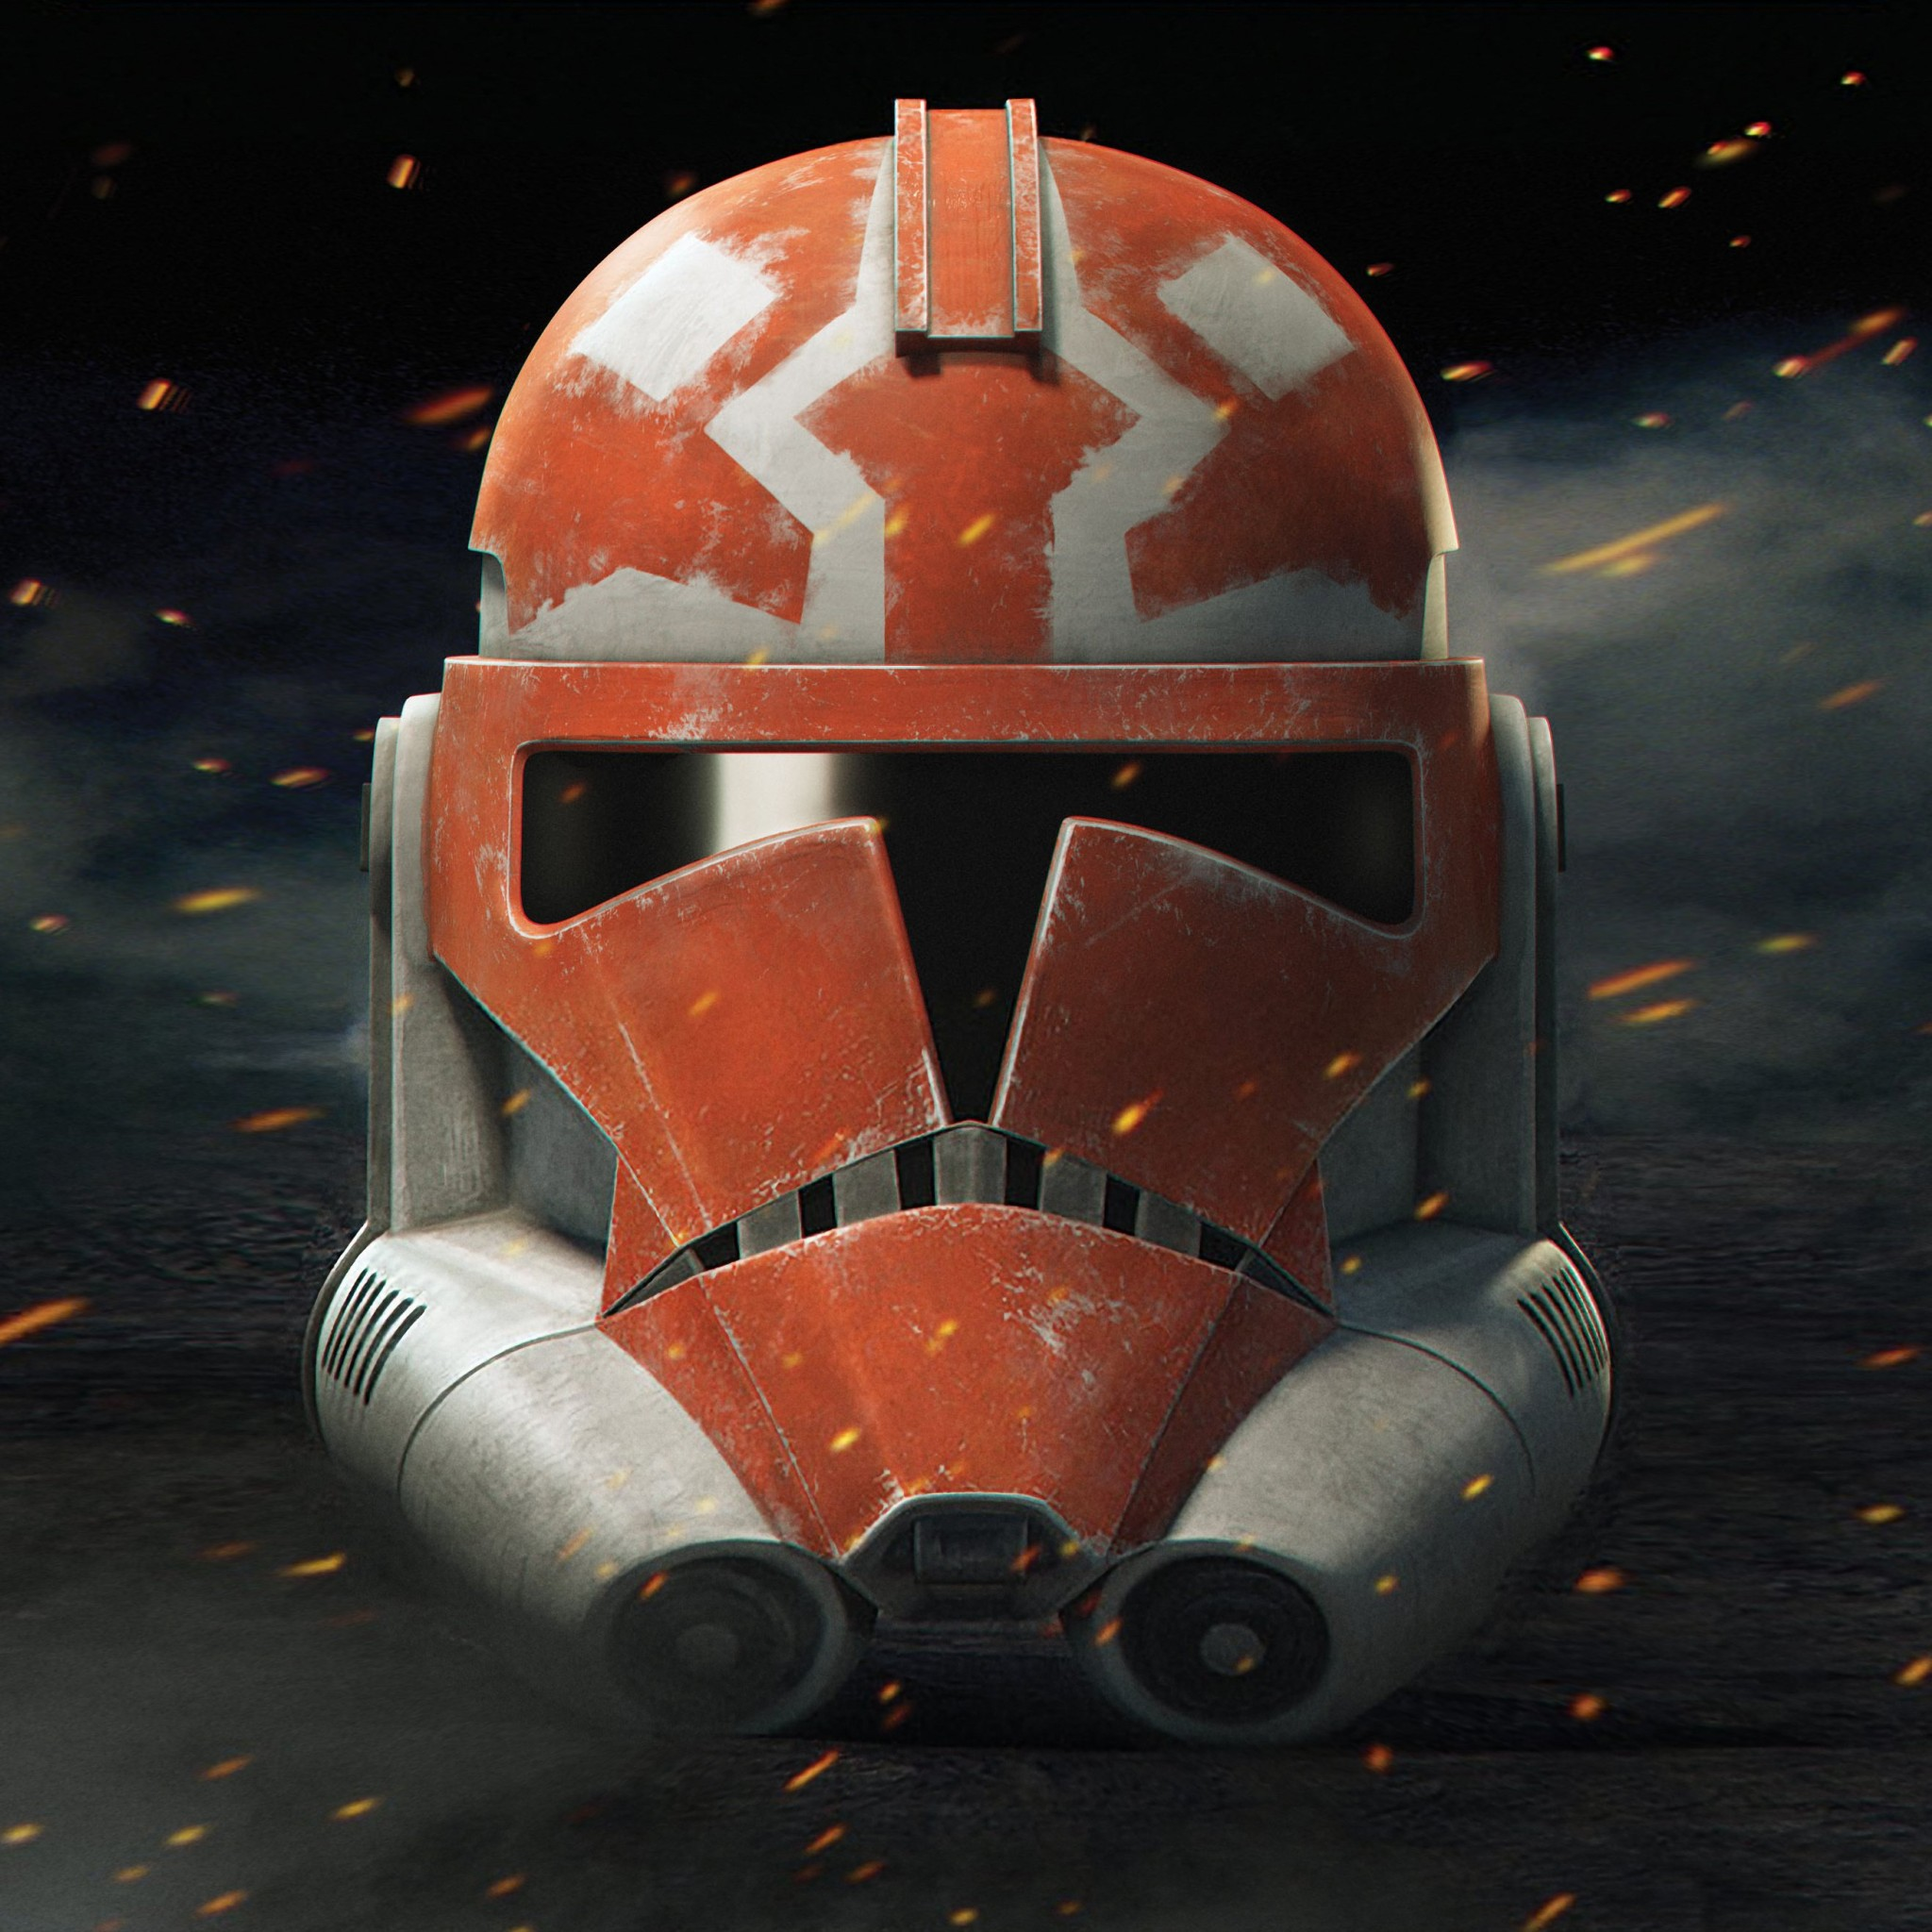 Star Wars The Clone Wars Season Clone Trooper Helmet 4k Wallpaper Retina Ipad Wallpaper The Hot Desktop Wallpapers And Backgrounds For Your Pc And Mobile